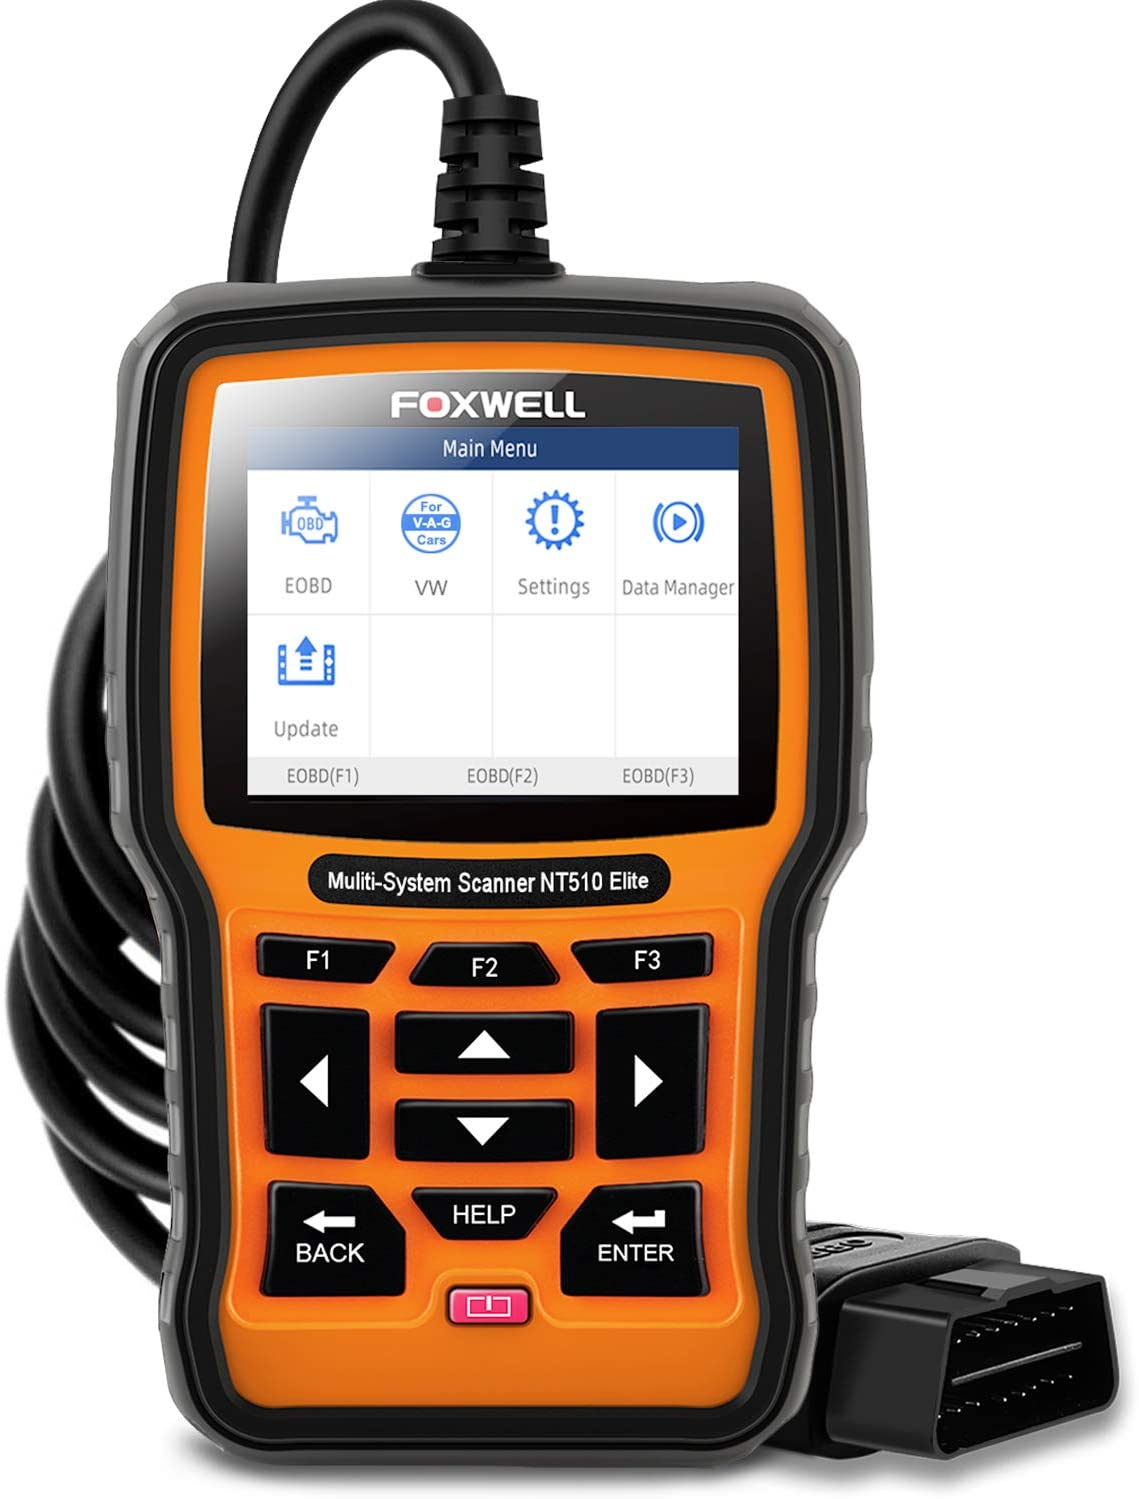 FOXWELL NT510 Elite Automotive Code Reader for VAG Full Systems Diagnostic Scanner on VW Audi Seat Skoda OBD2 Car Scan Tool All Functions Reset ABS SRS SAS EPB TPMS Oil Light with Active Test